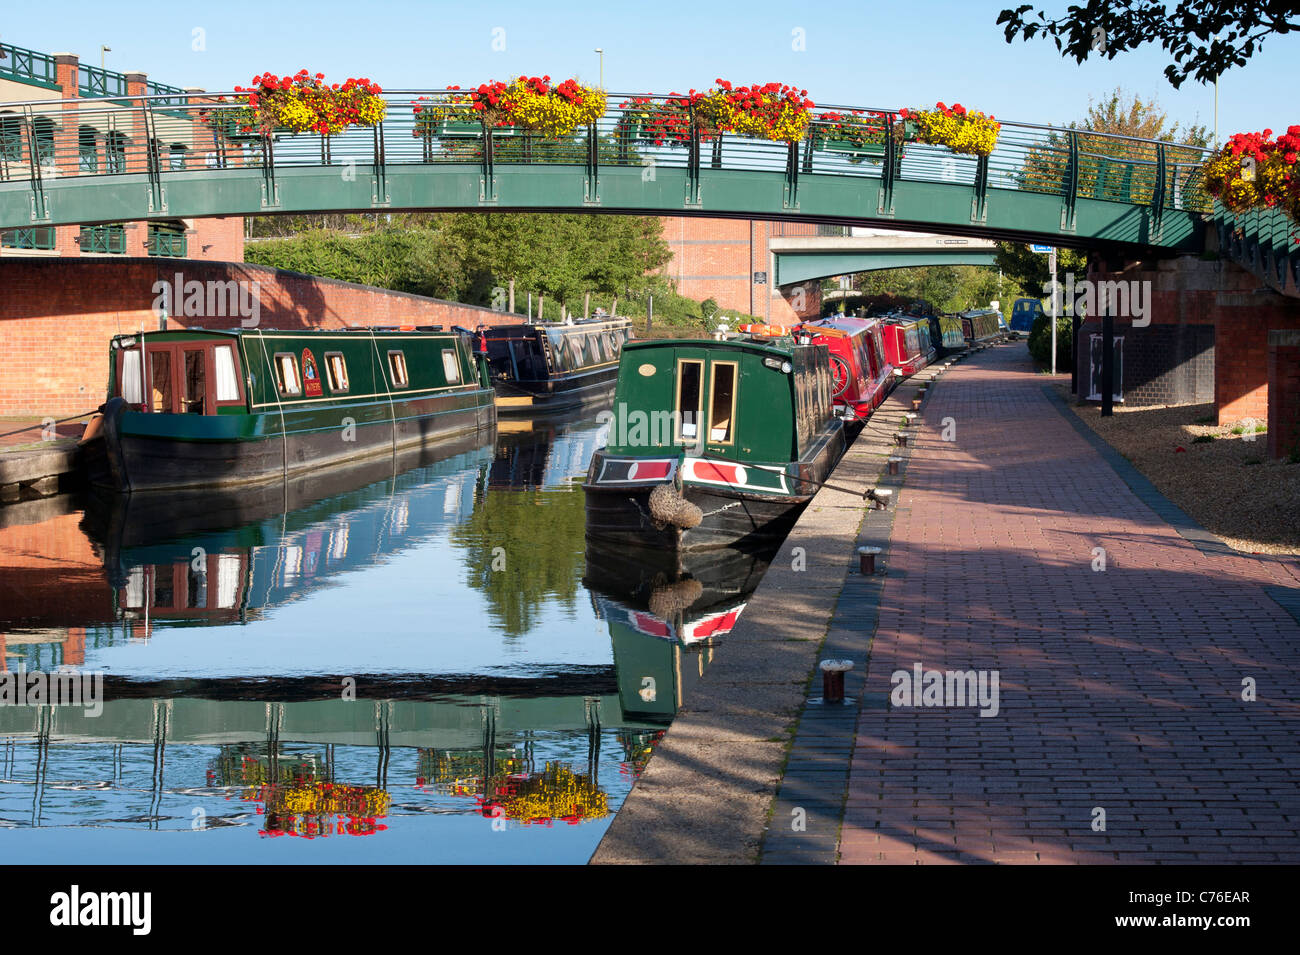 Canal boats in Banbury by the Castle Quay shopping centre . Oxfordshire, England - Stock Image